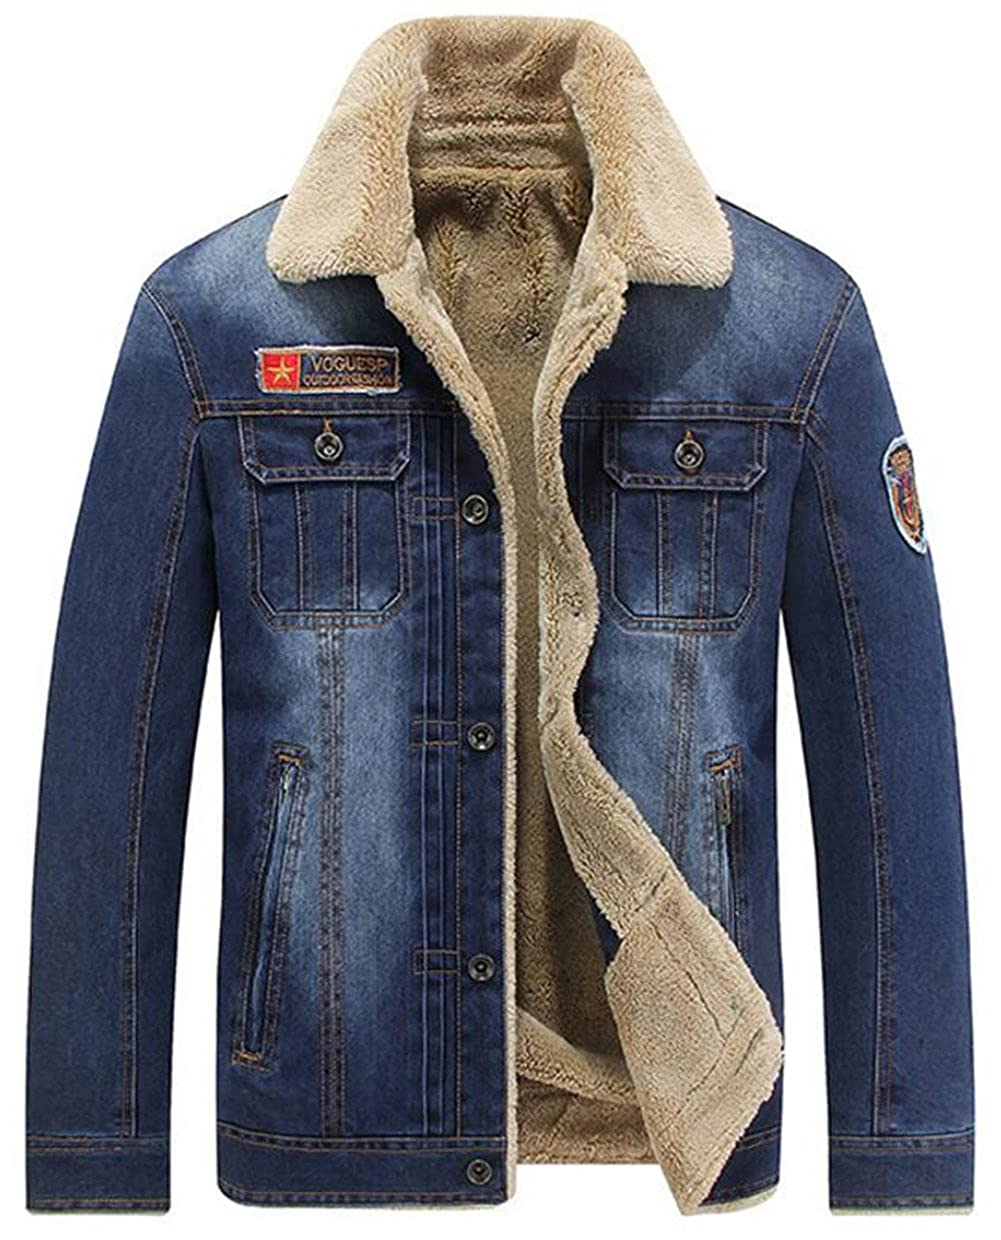 JEWOSOR Men's Winter Thick Denim Jacket Cashmere Lining Warm Jacket